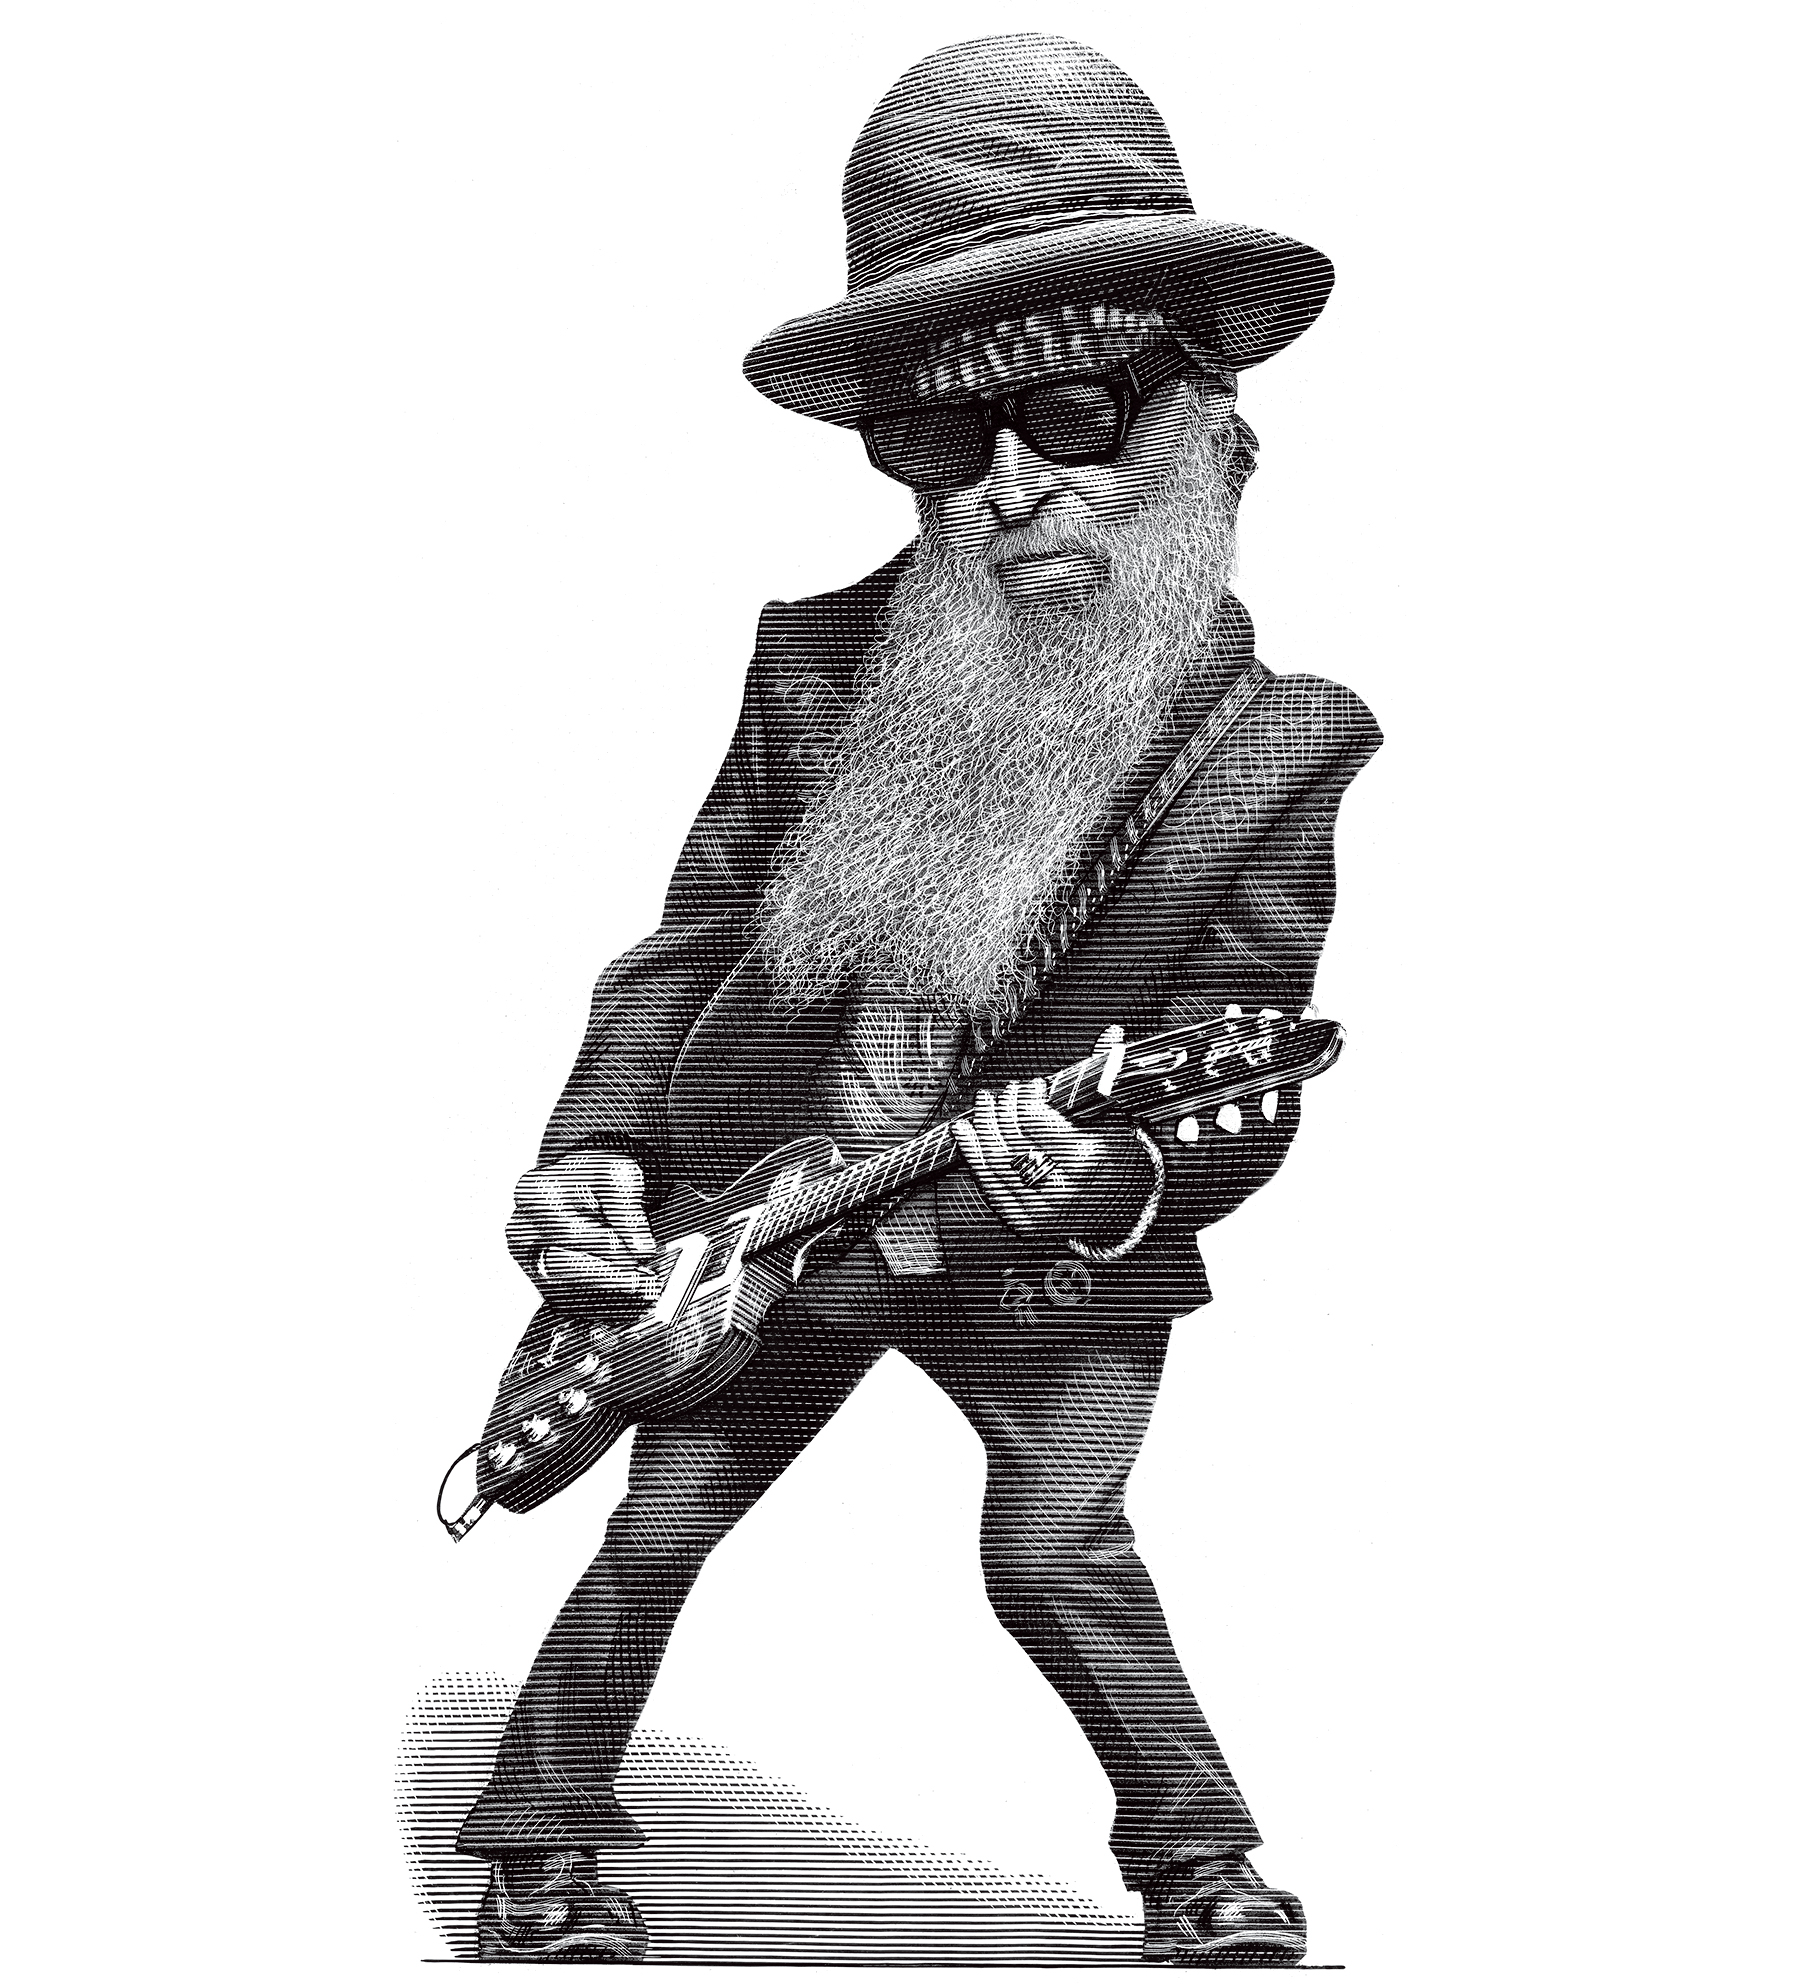 Zz Tops Billy Gibbons On Cars Marriage Jimi Hendrix Rolling Stone